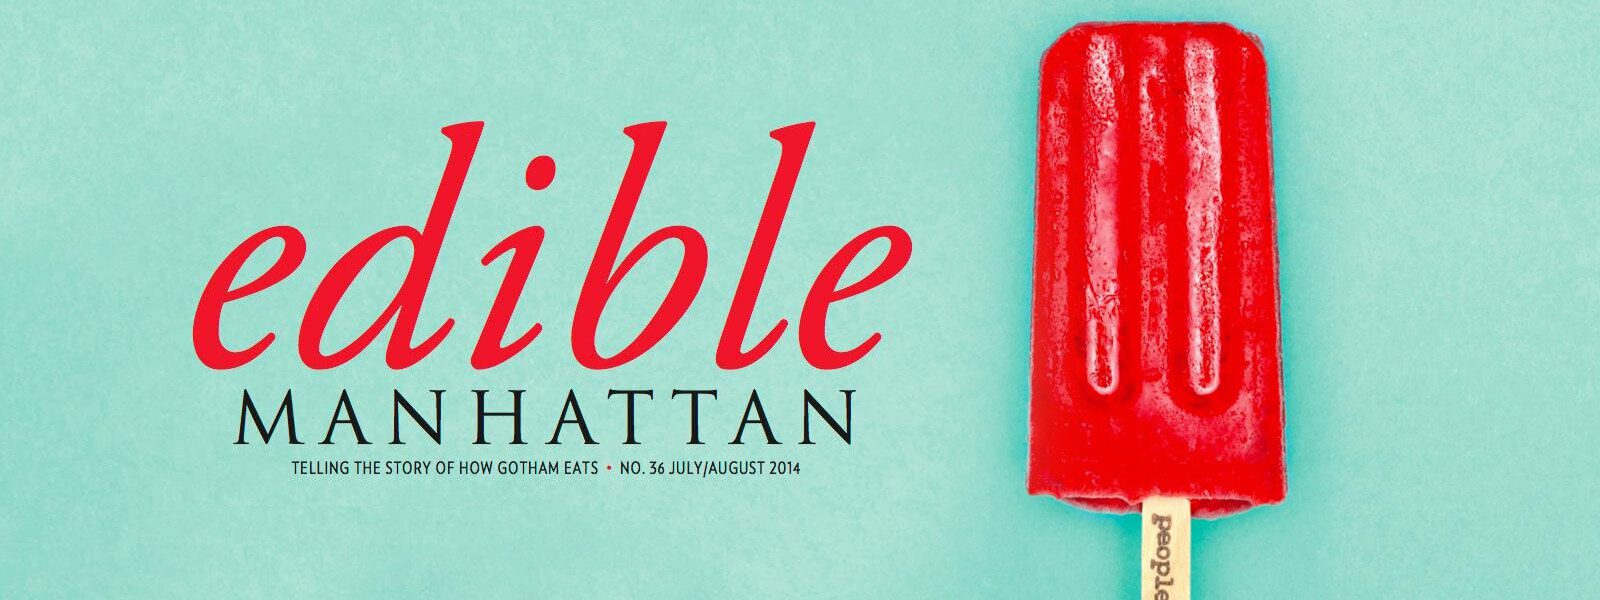 Edible-Manhattan-Magazine-36-July-August-2014